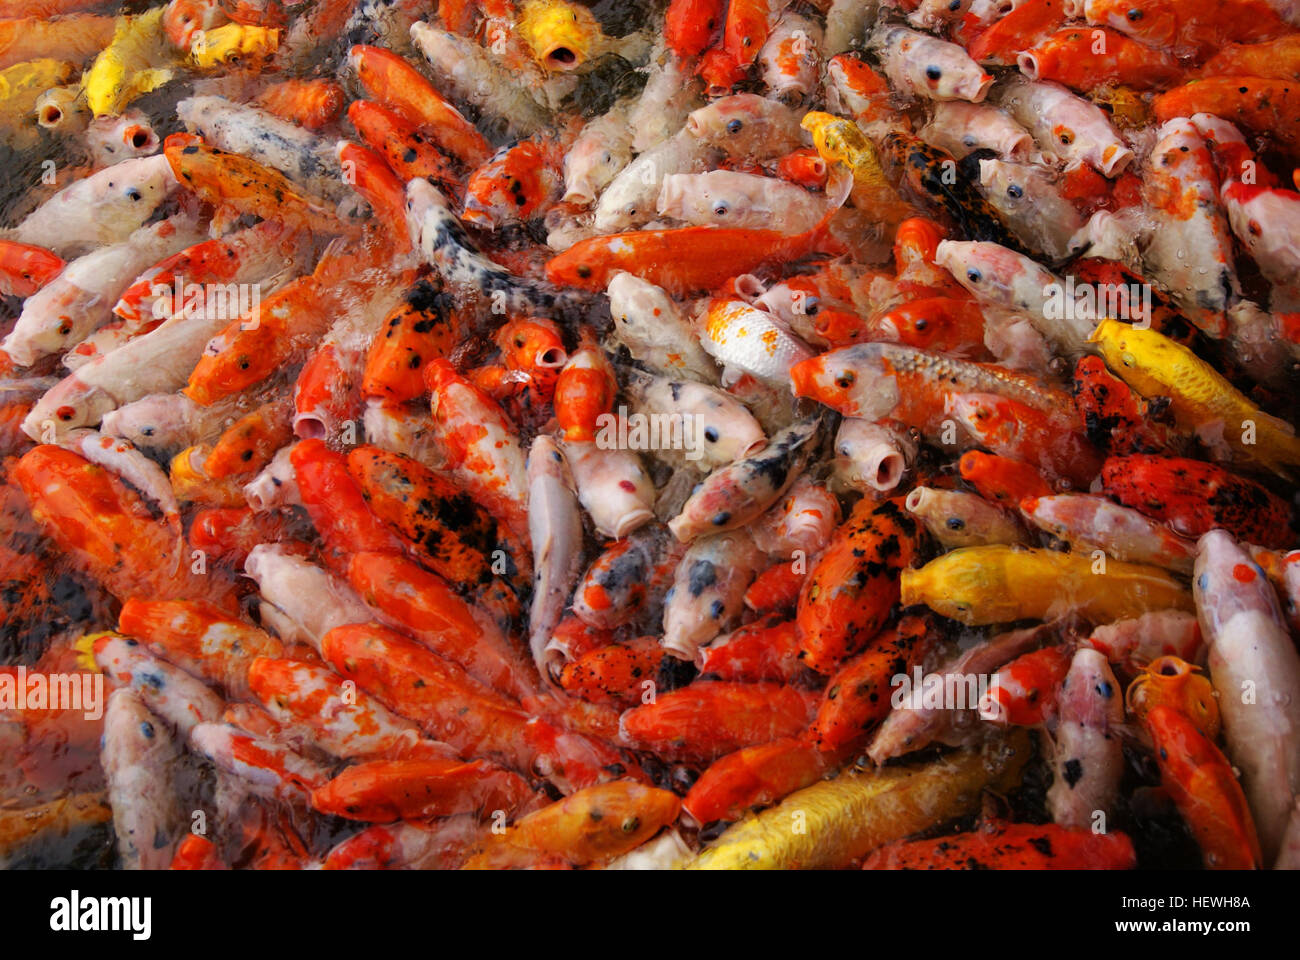 Types Of Koi Fish Images >> Koi Wikipedia. Koi Fish Facts A Point By ...